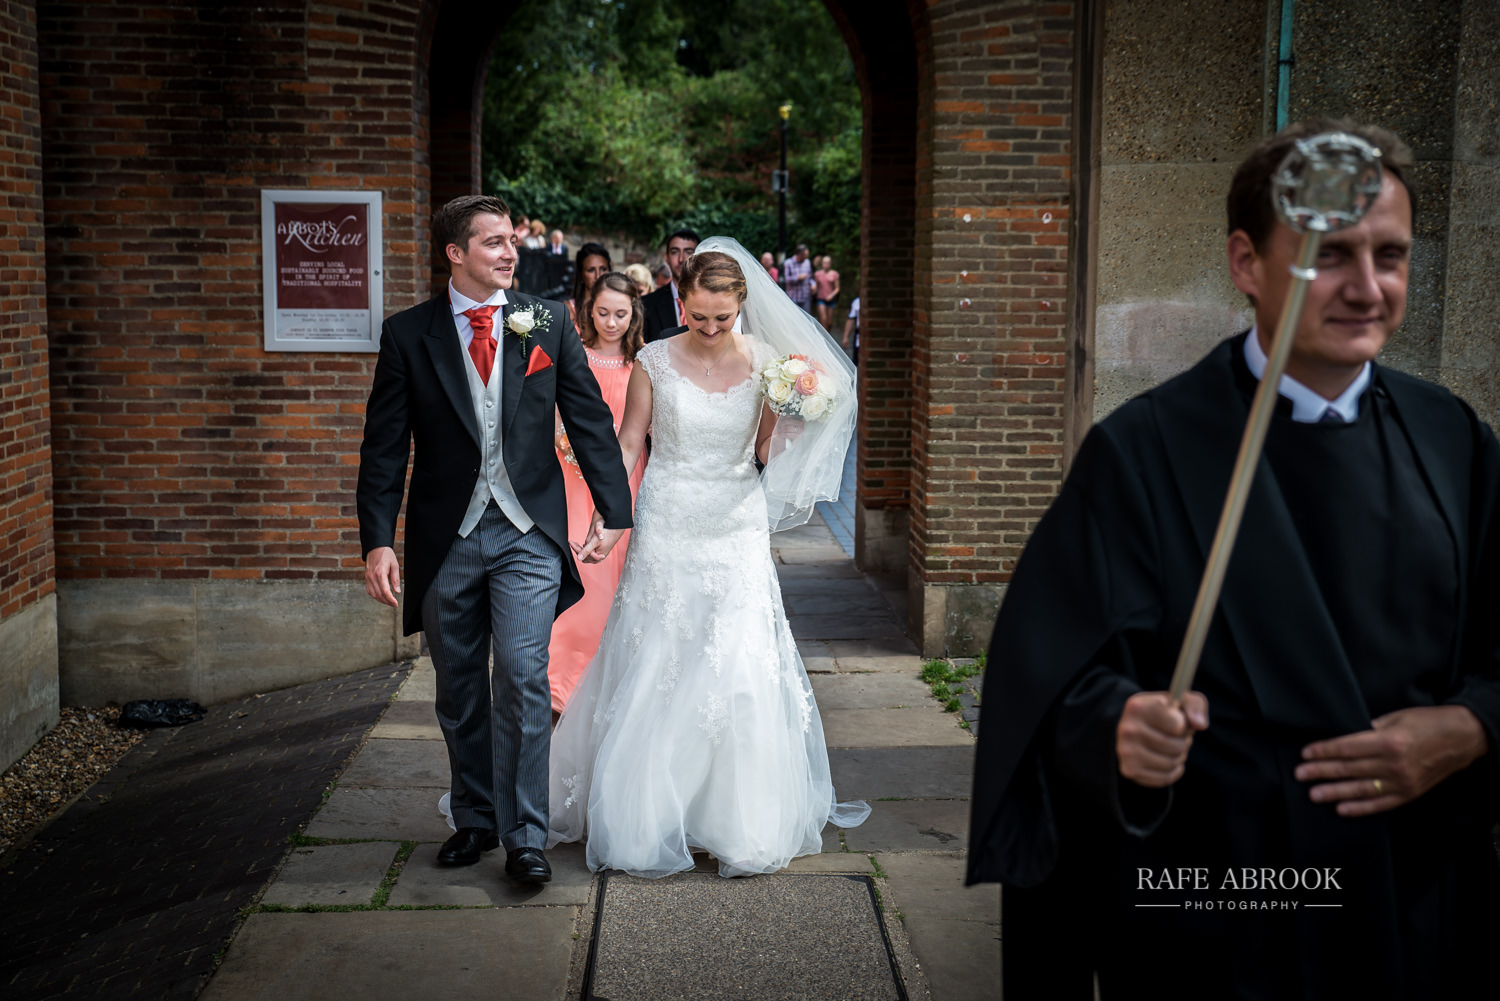 st albans cathedral wedding harpenden rafe abrook photography hertfordshire wedding photographer-1025.jpg